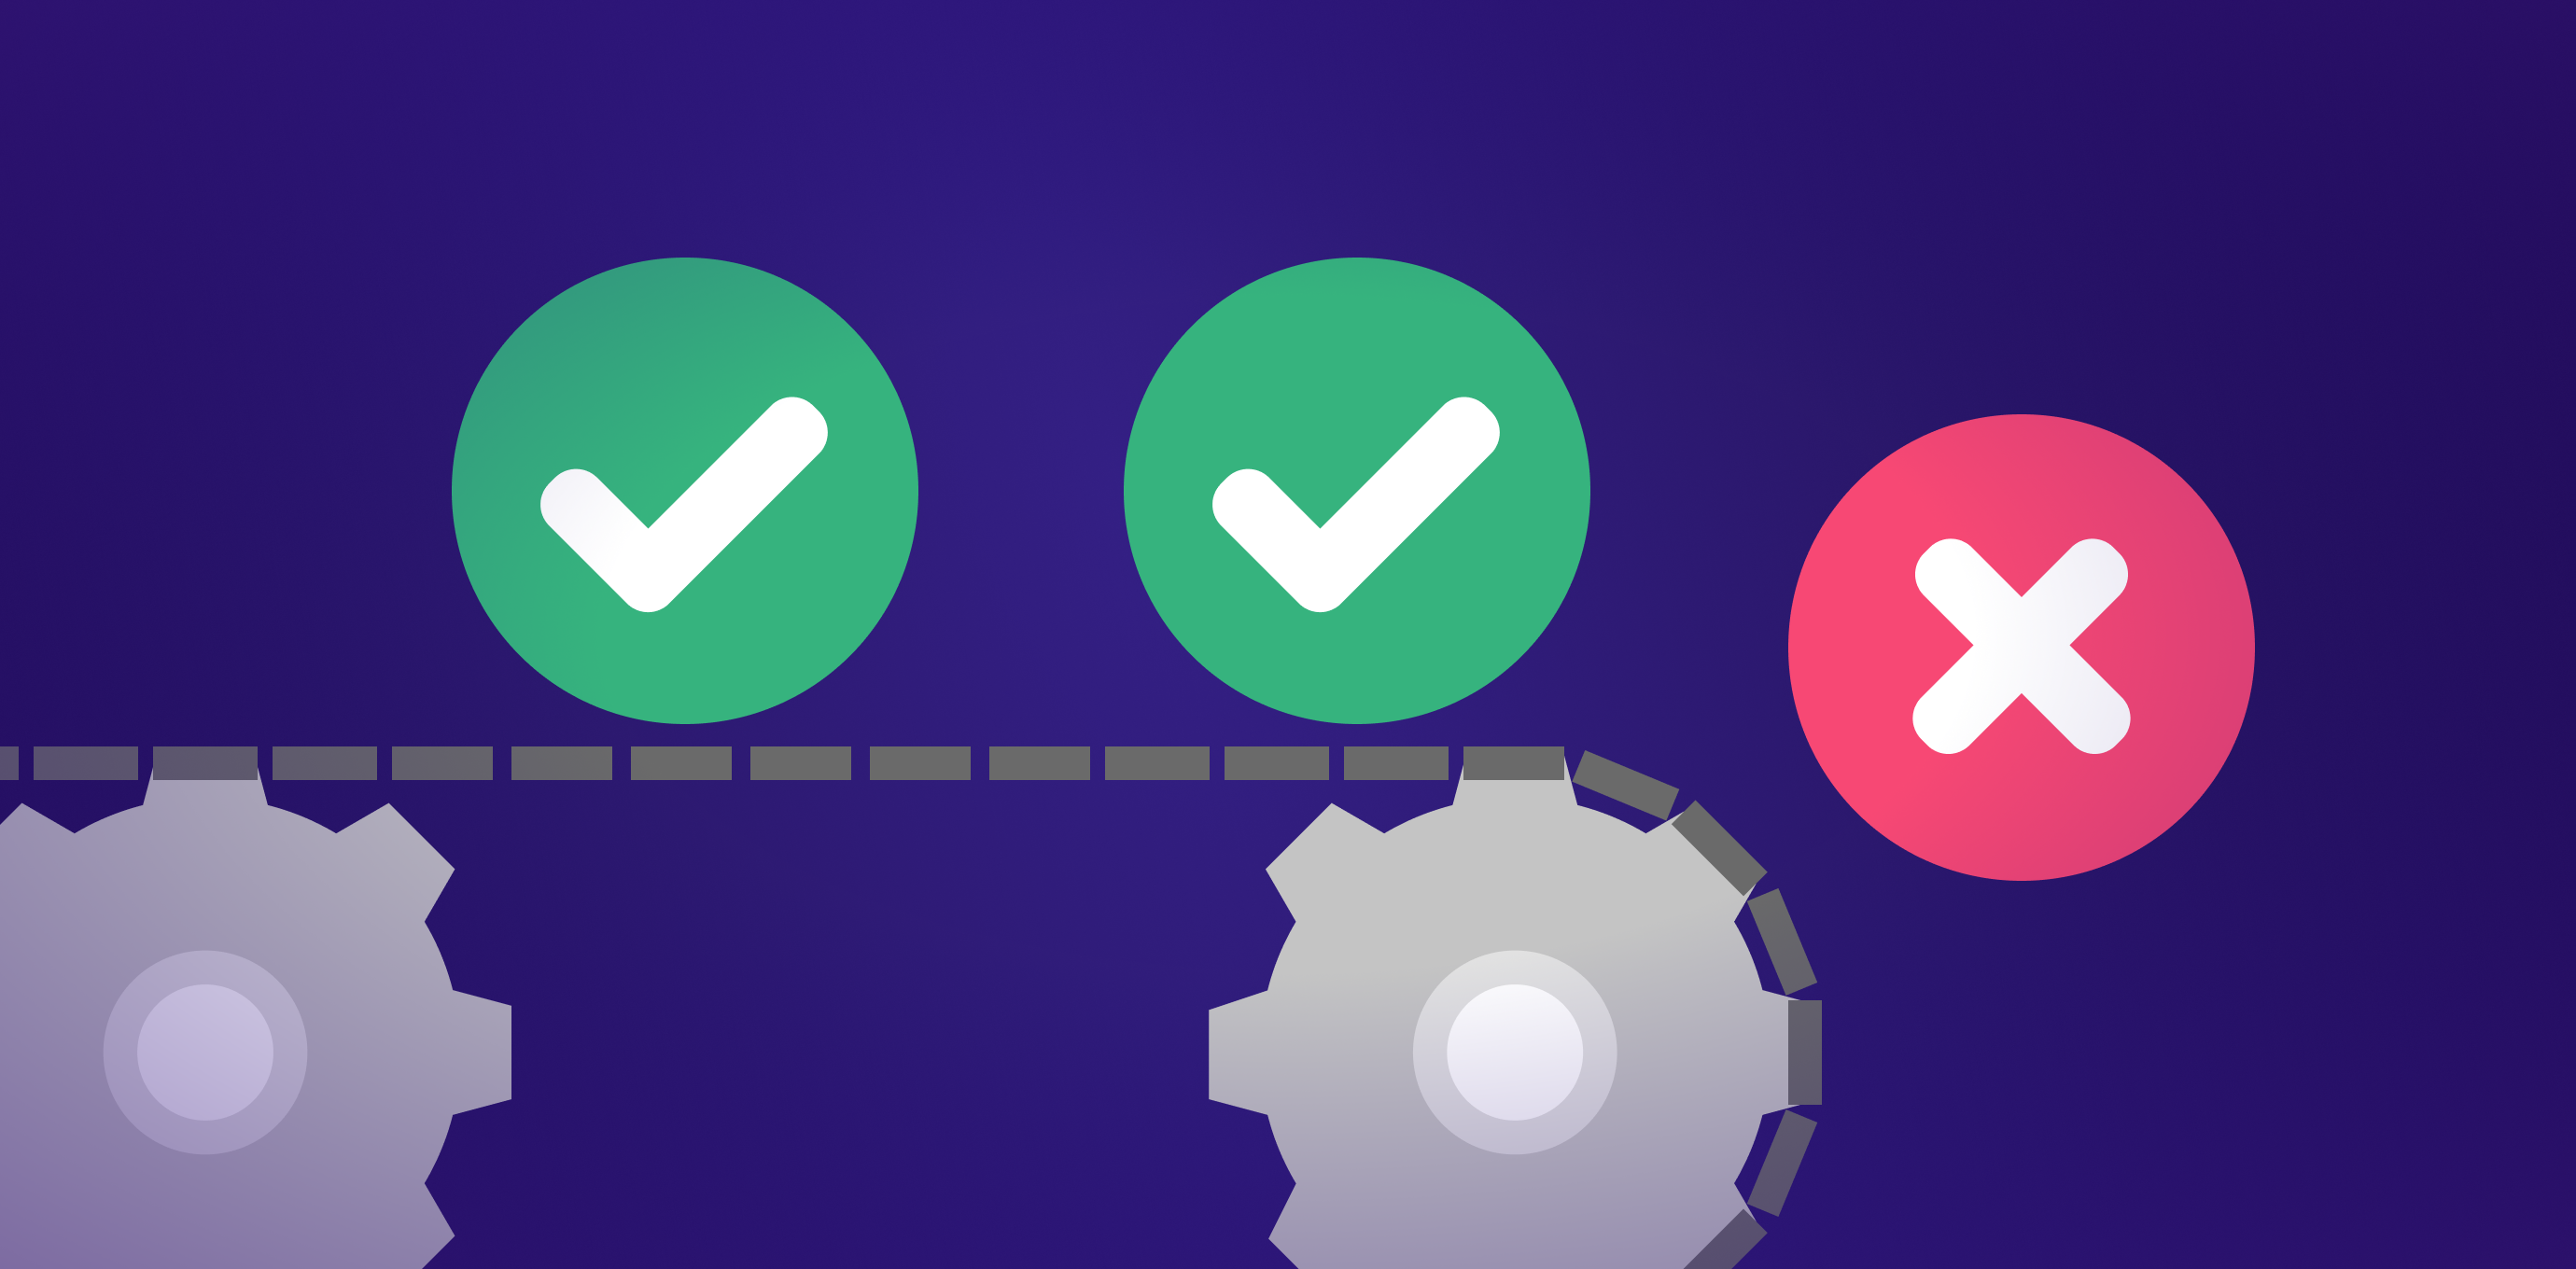 Automated vs. manual testing: which is better?